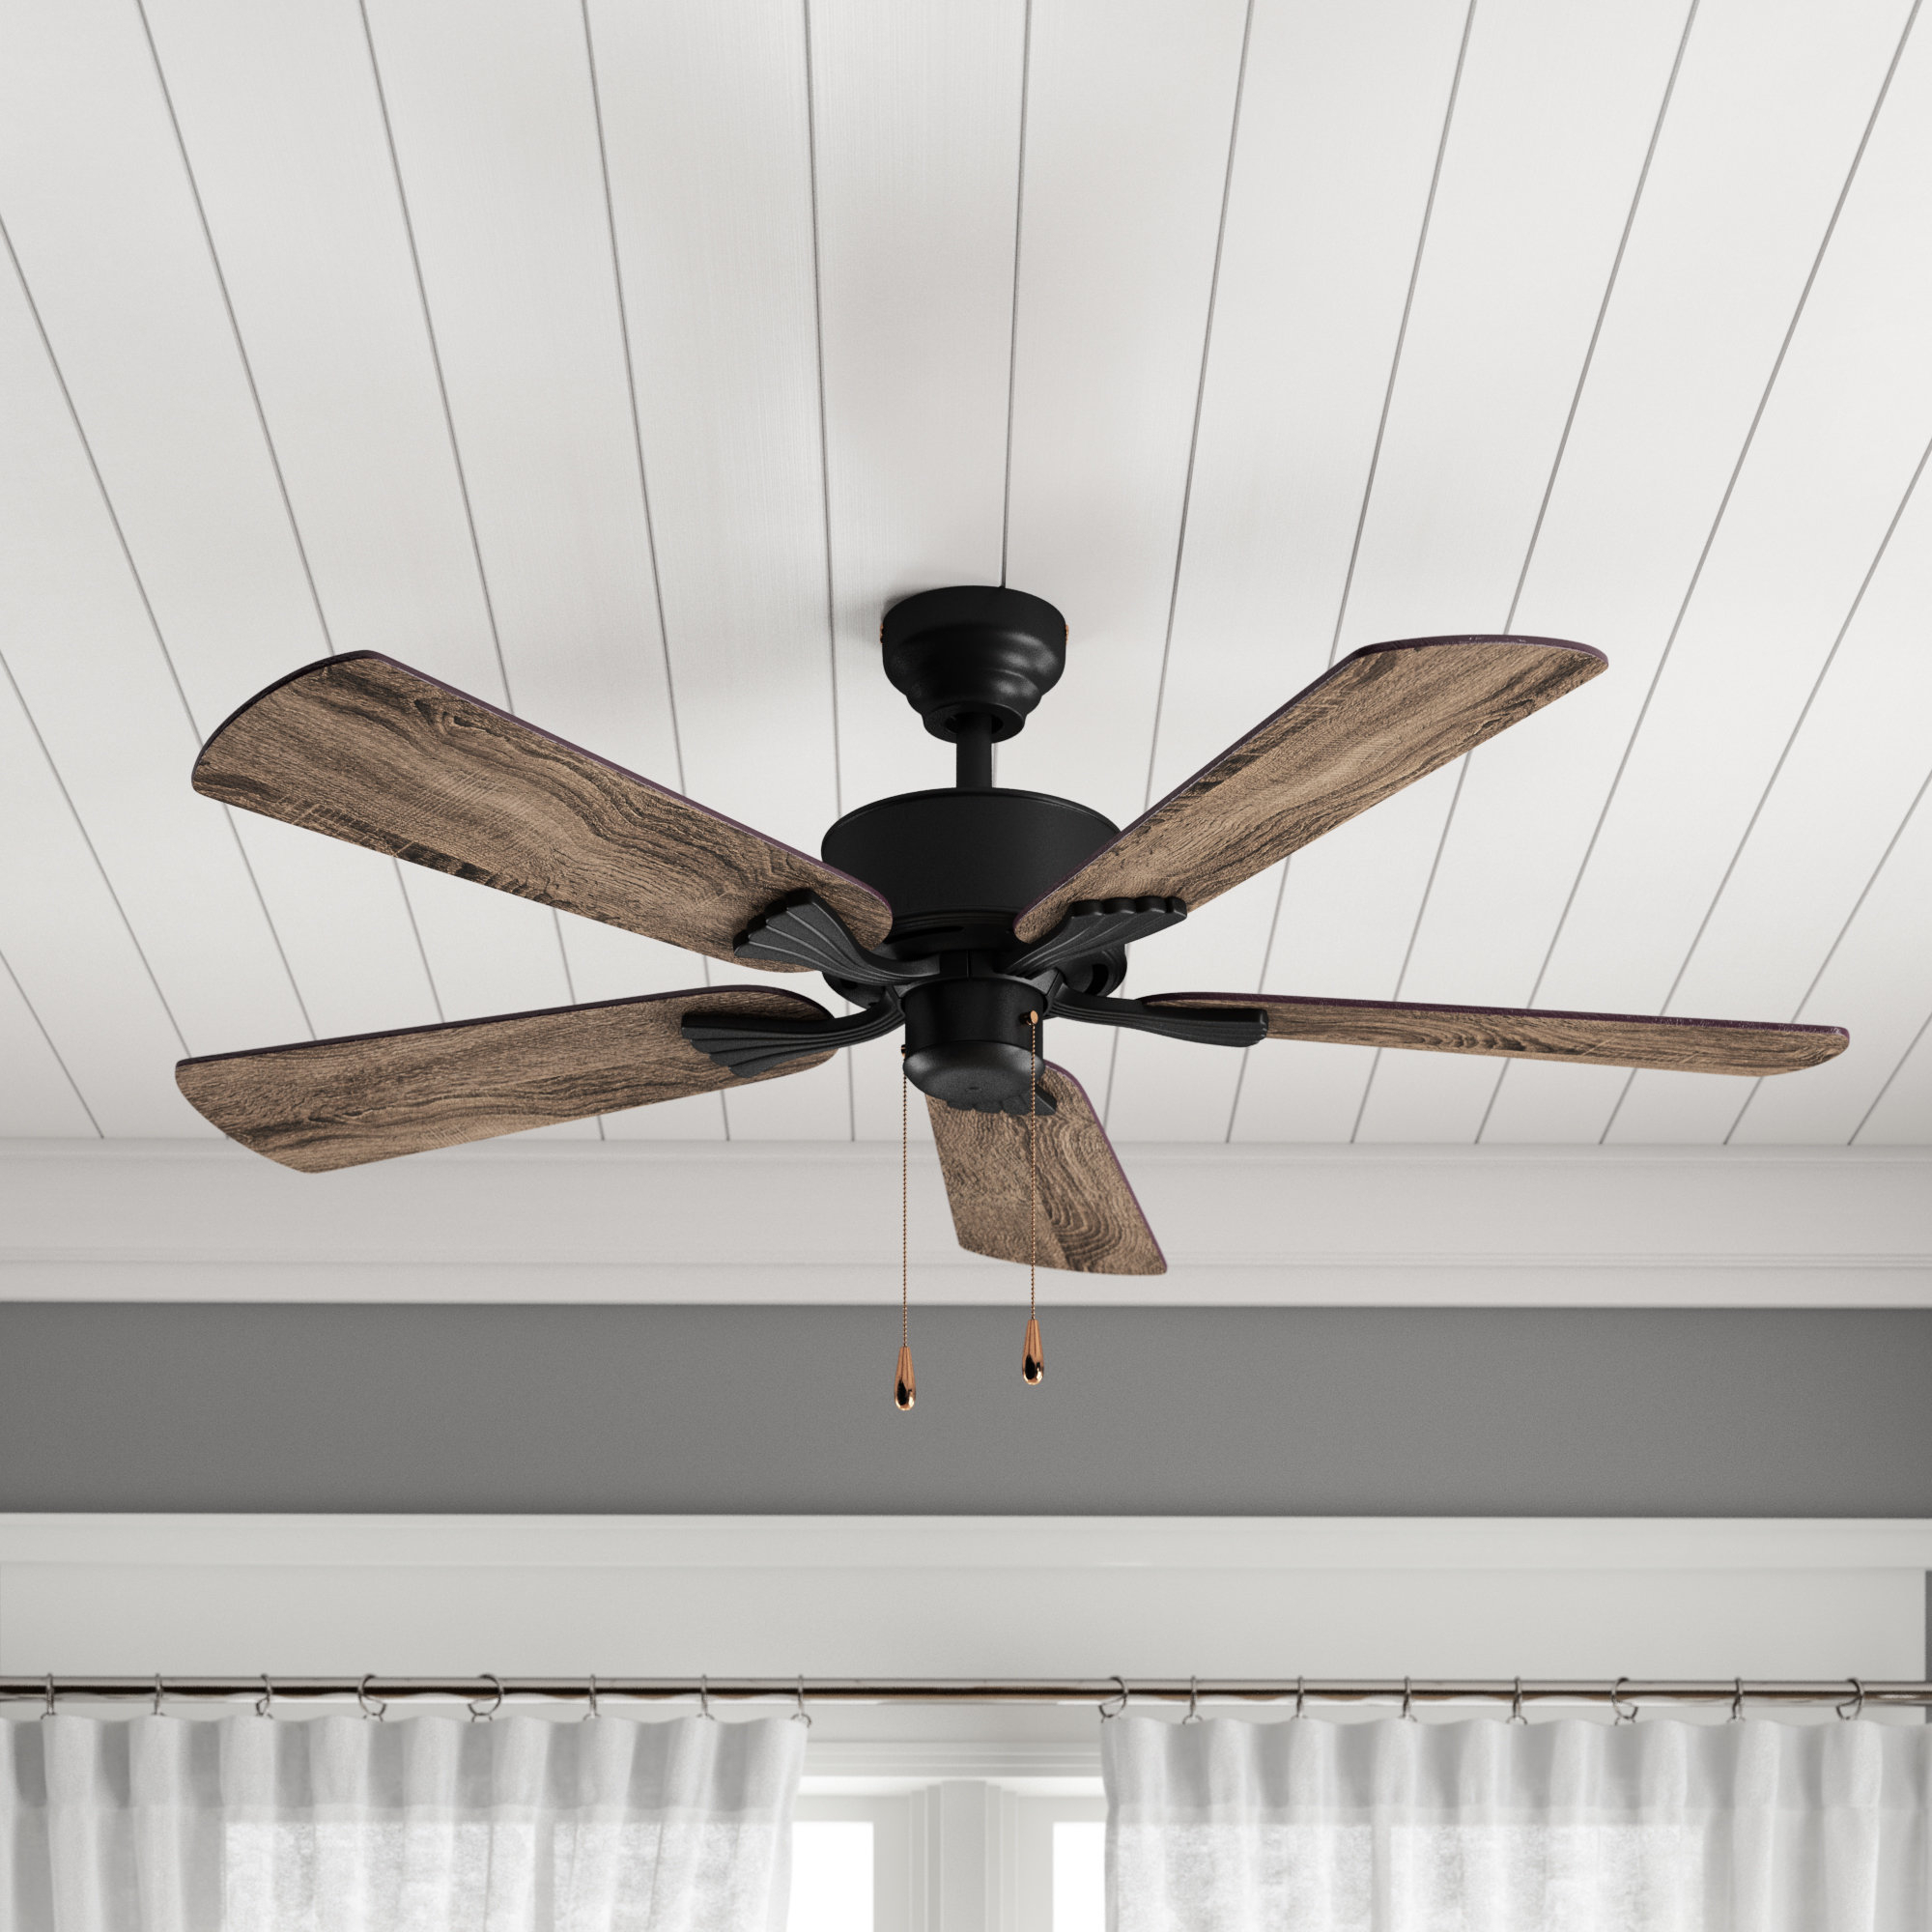 Wayfair Intended For Recent Quebec 5 Blade Ceiling Fans (View 12 of 20)